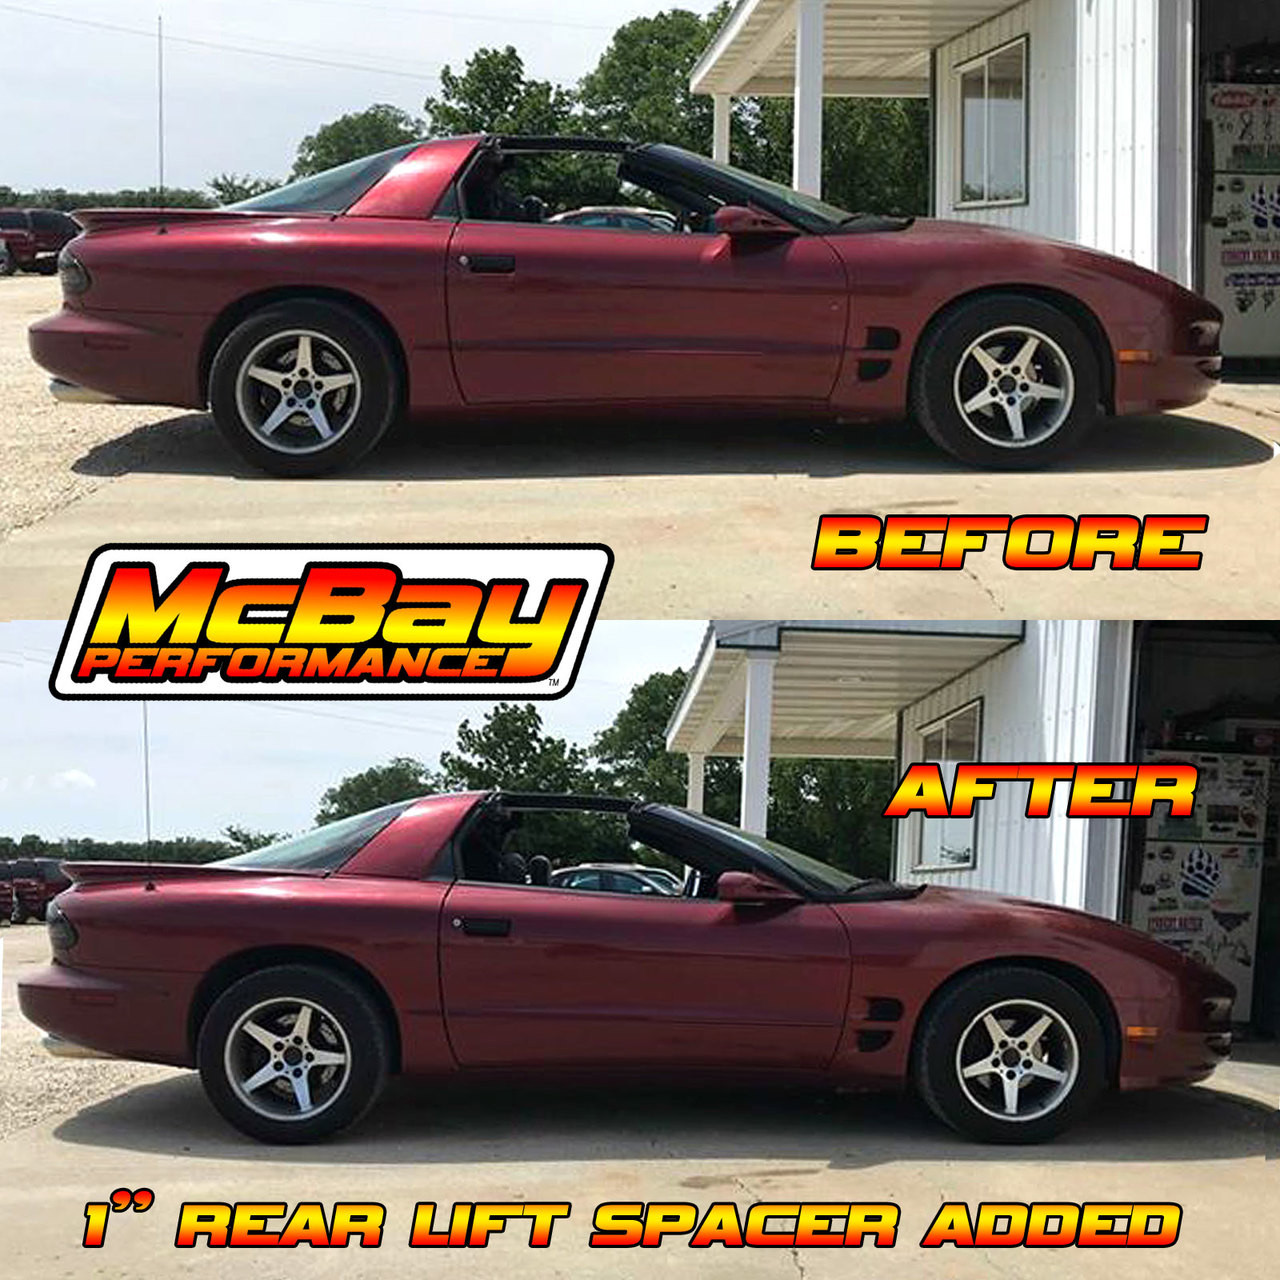 "MP1627 - 1"" Rear Coil Spring Spacer Lift Installed on a Firebird"